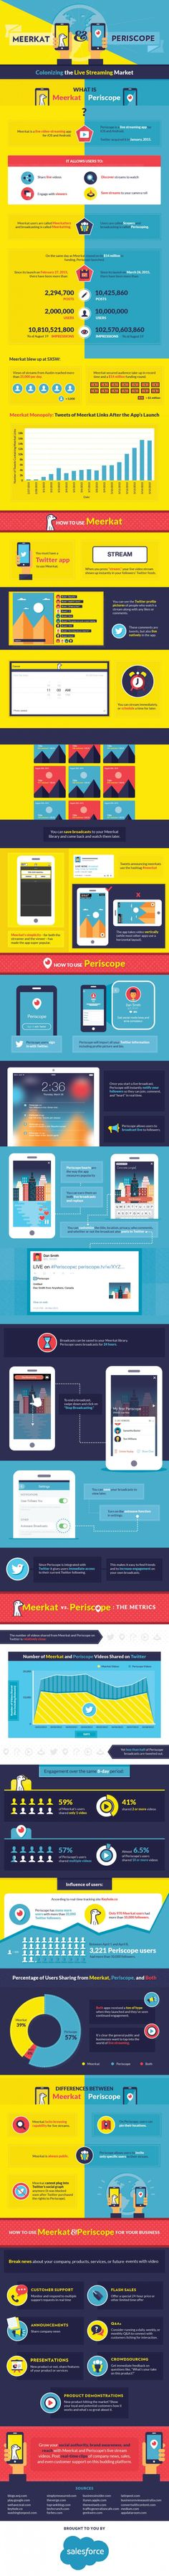 Infographie 232 - Meerkat Periscope livestreaming